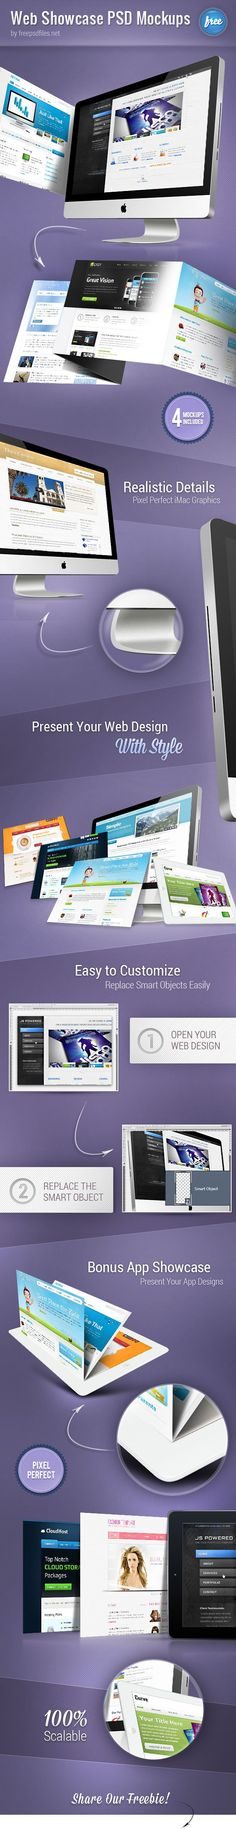 99 best download mockups in psd ai eps png for free images